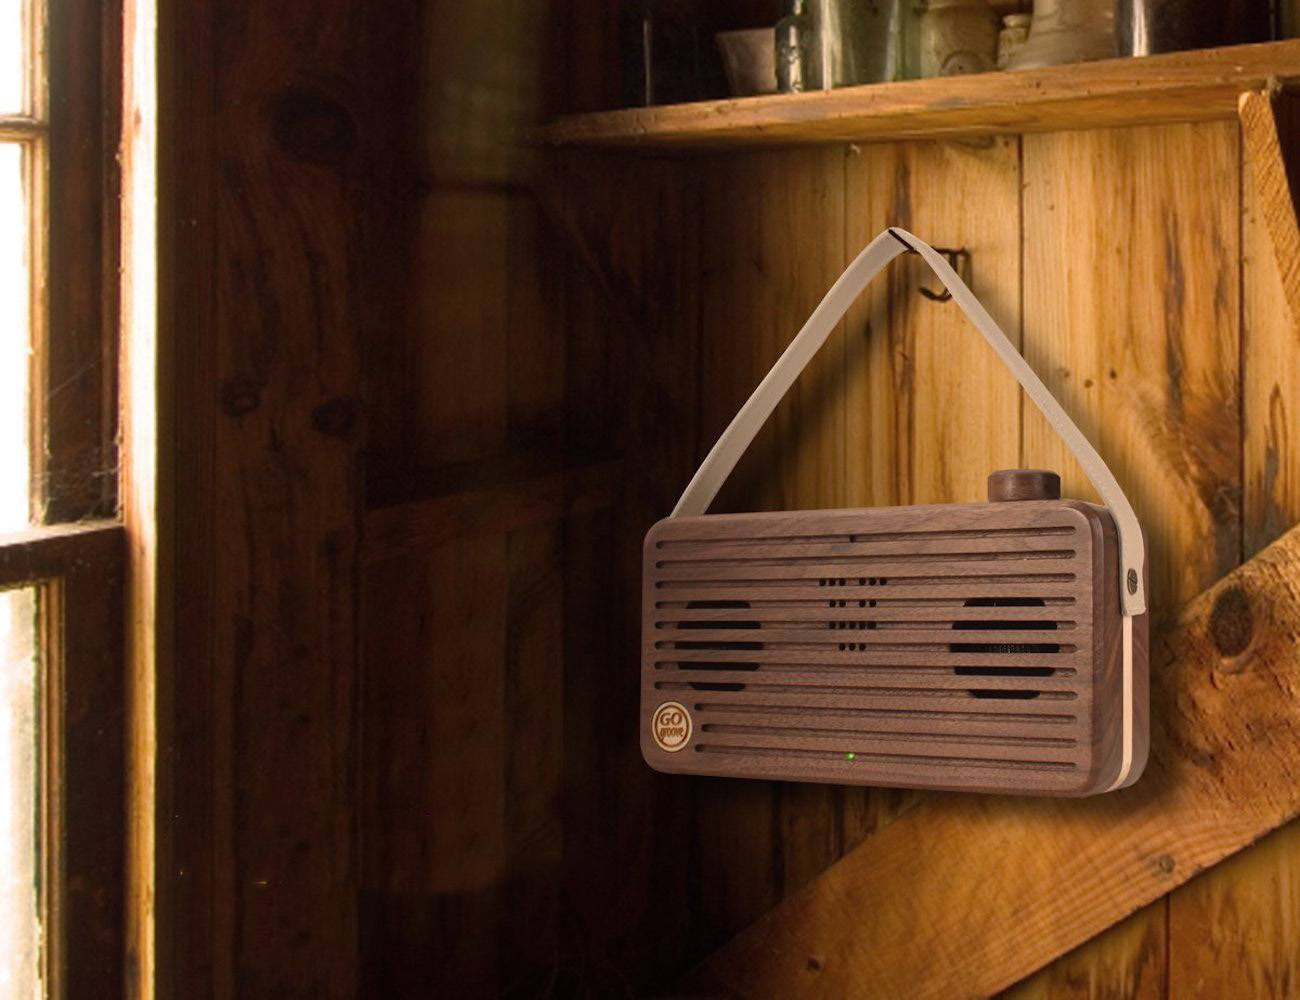 Hand+Crafted+Wood+Speaker+By+Go+Groove